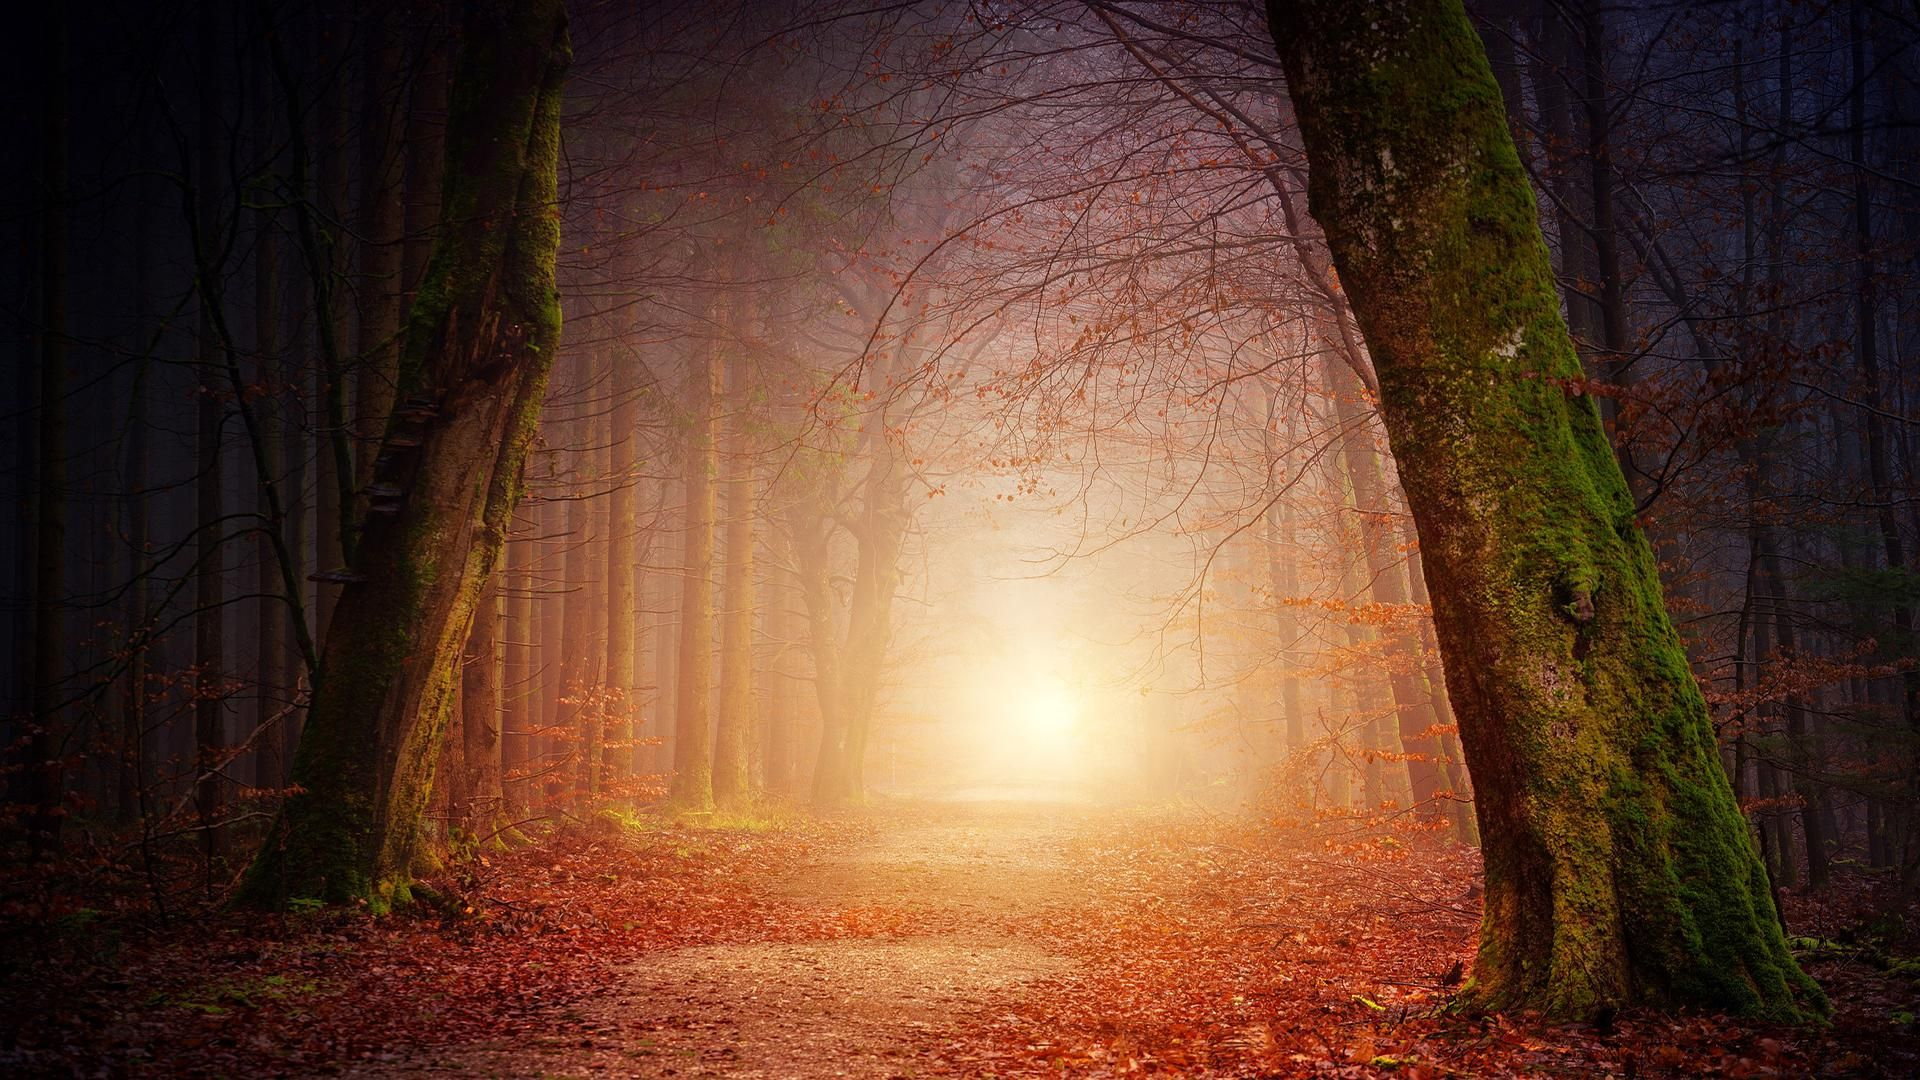 Red Forest 1920x1080 Aesthetic Wallpapers Nature Images Landscape